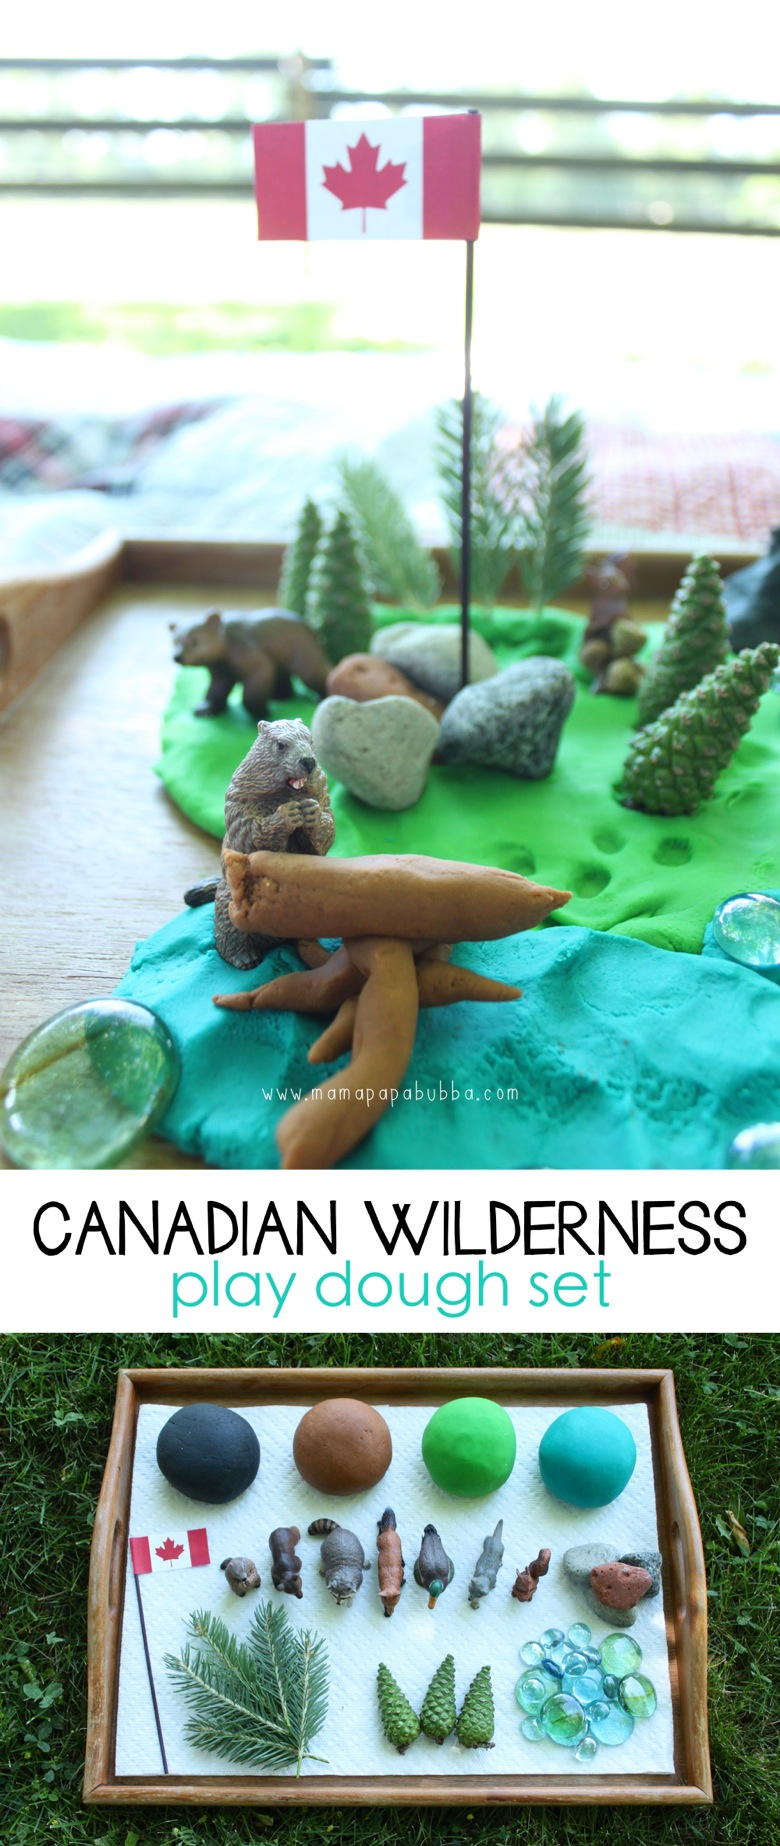 Canadian Wilderness Play Dough Set | Mama Papa Bubba